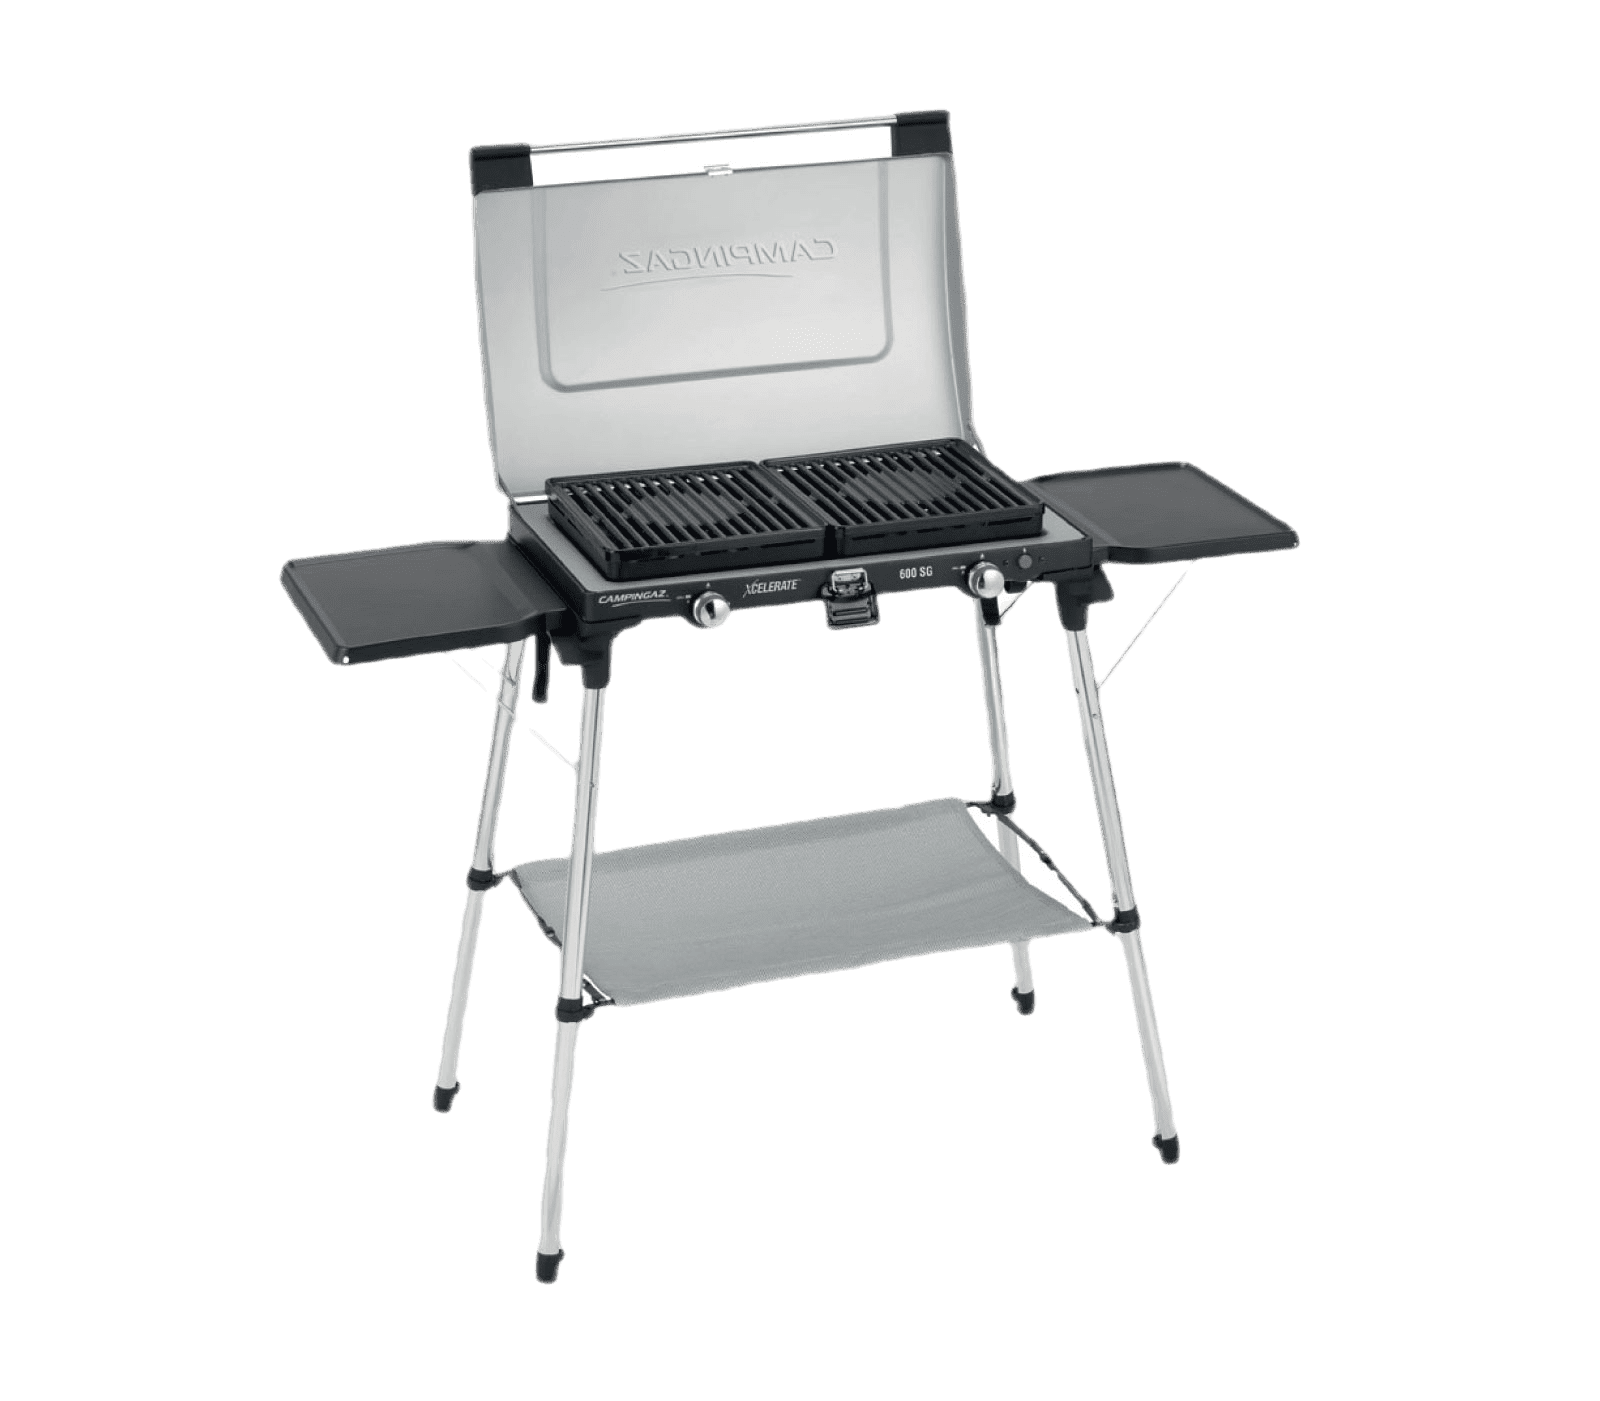 600-sg stove grill